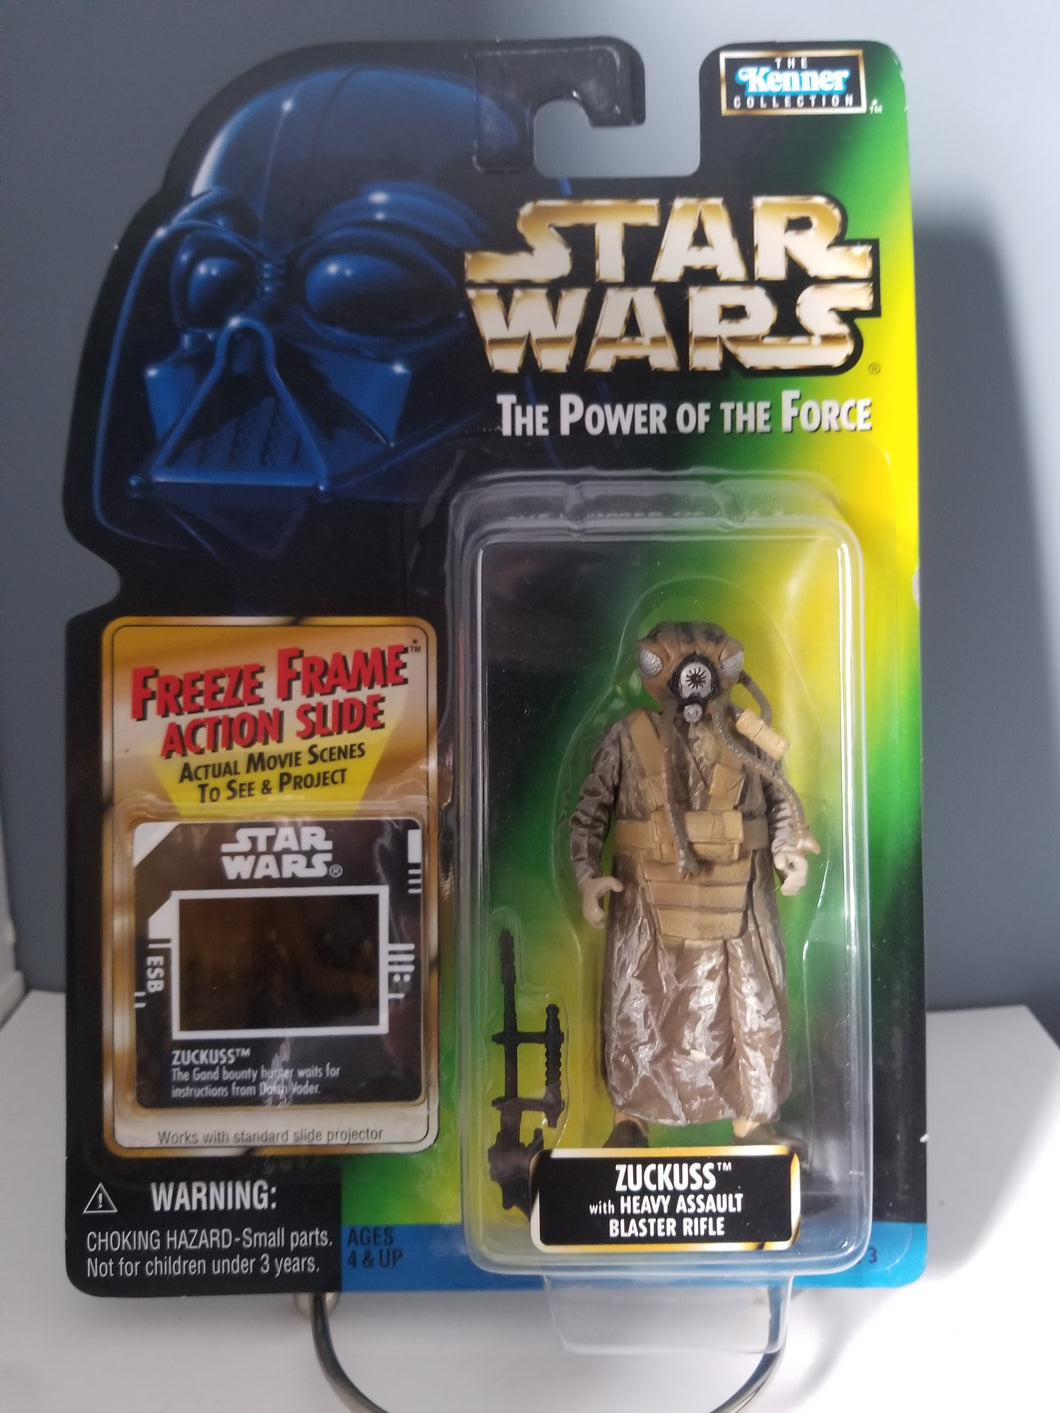 1997 Star Wars POTF2 Zuckuss / 4-LOM Green Carded Figure with Freeze Frame